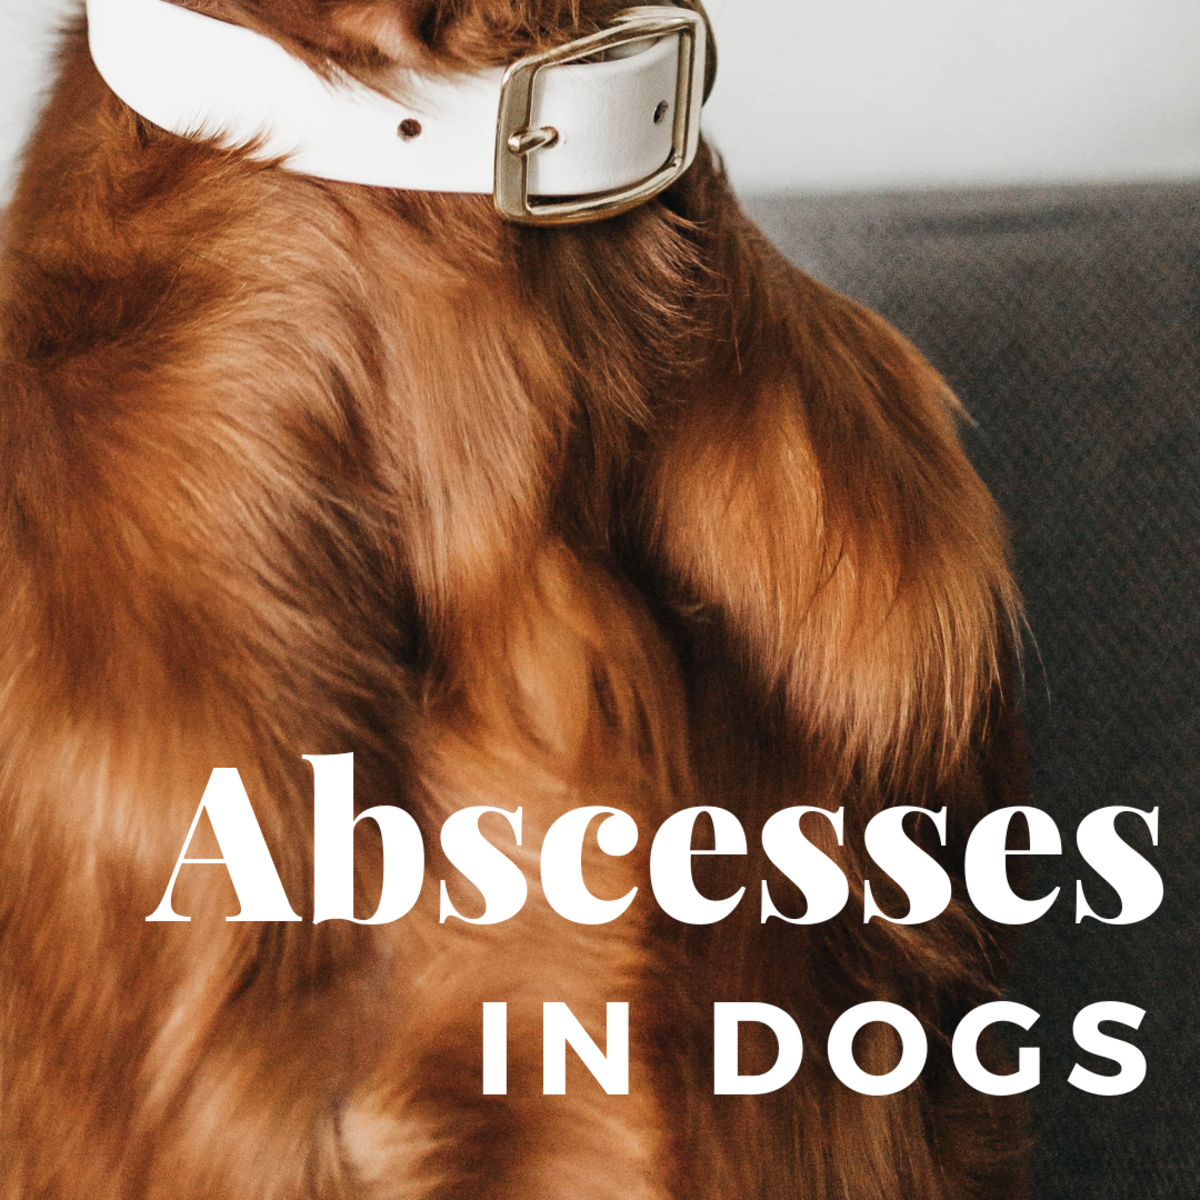 Abscesses in Dogs: Symptoms and Treatment